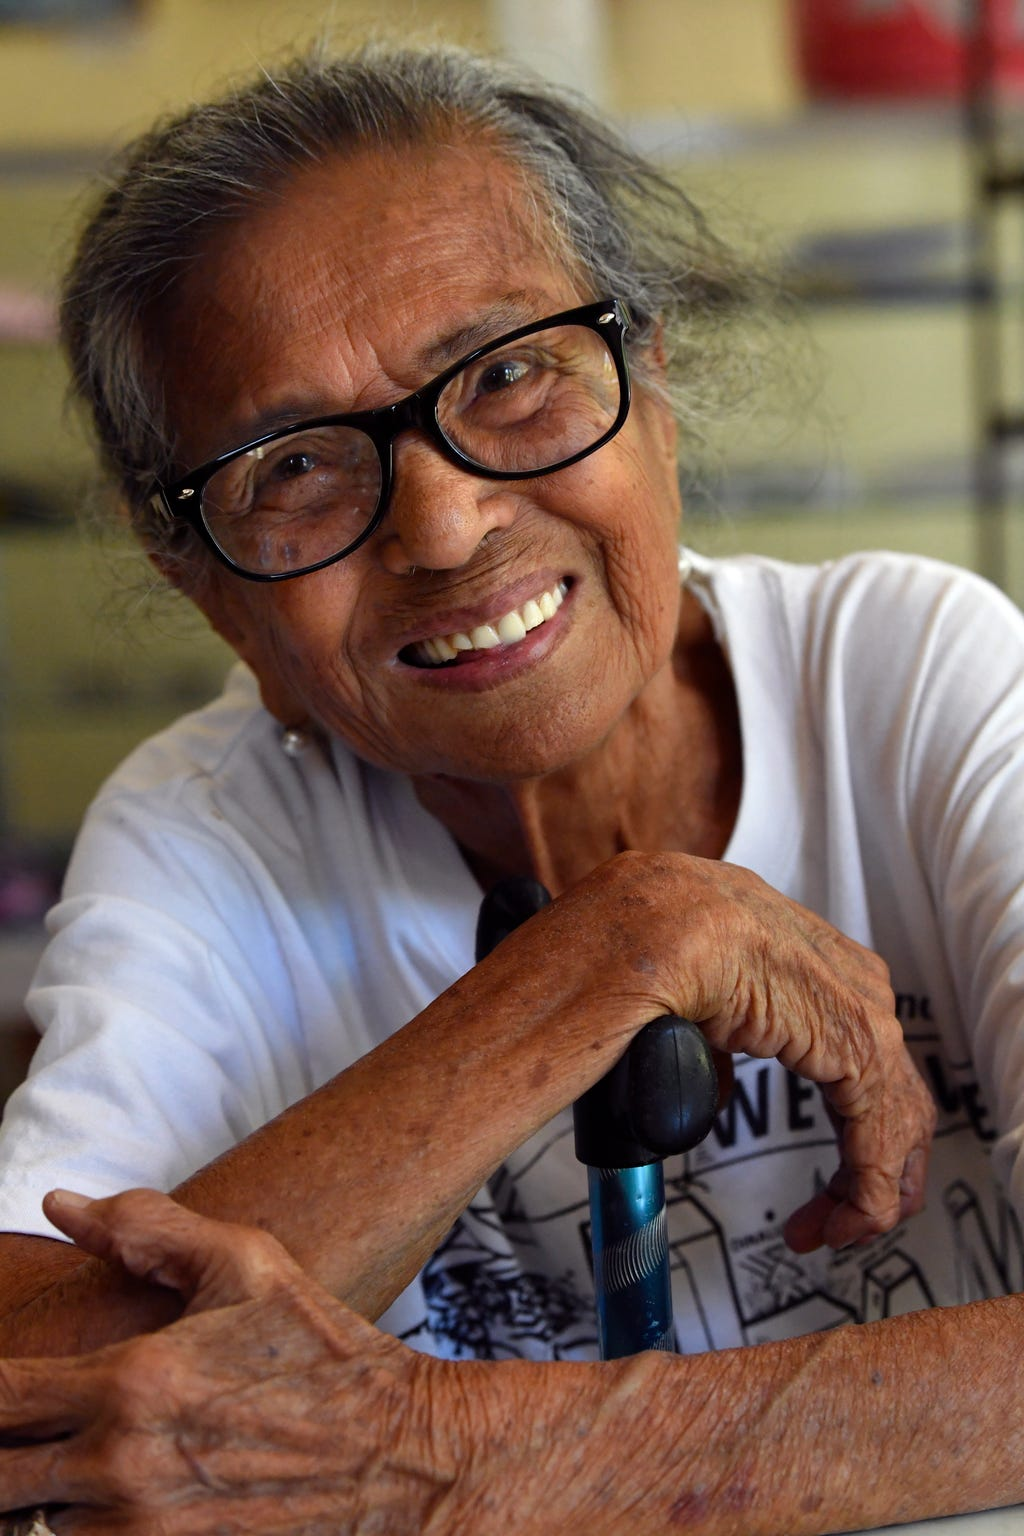 "Maria Cervantes, 90, at the Bataan World War II Museum in Balanga City, Philippines, on Oct. 22, 2019. Cervantes was 13 when she was swept up in the Bataan Death March with her family. Despite the atrocities she witnessed, she long ago let go of any anger toward the Japanese. ""Love your enemies, and God will reward you,"" she said."